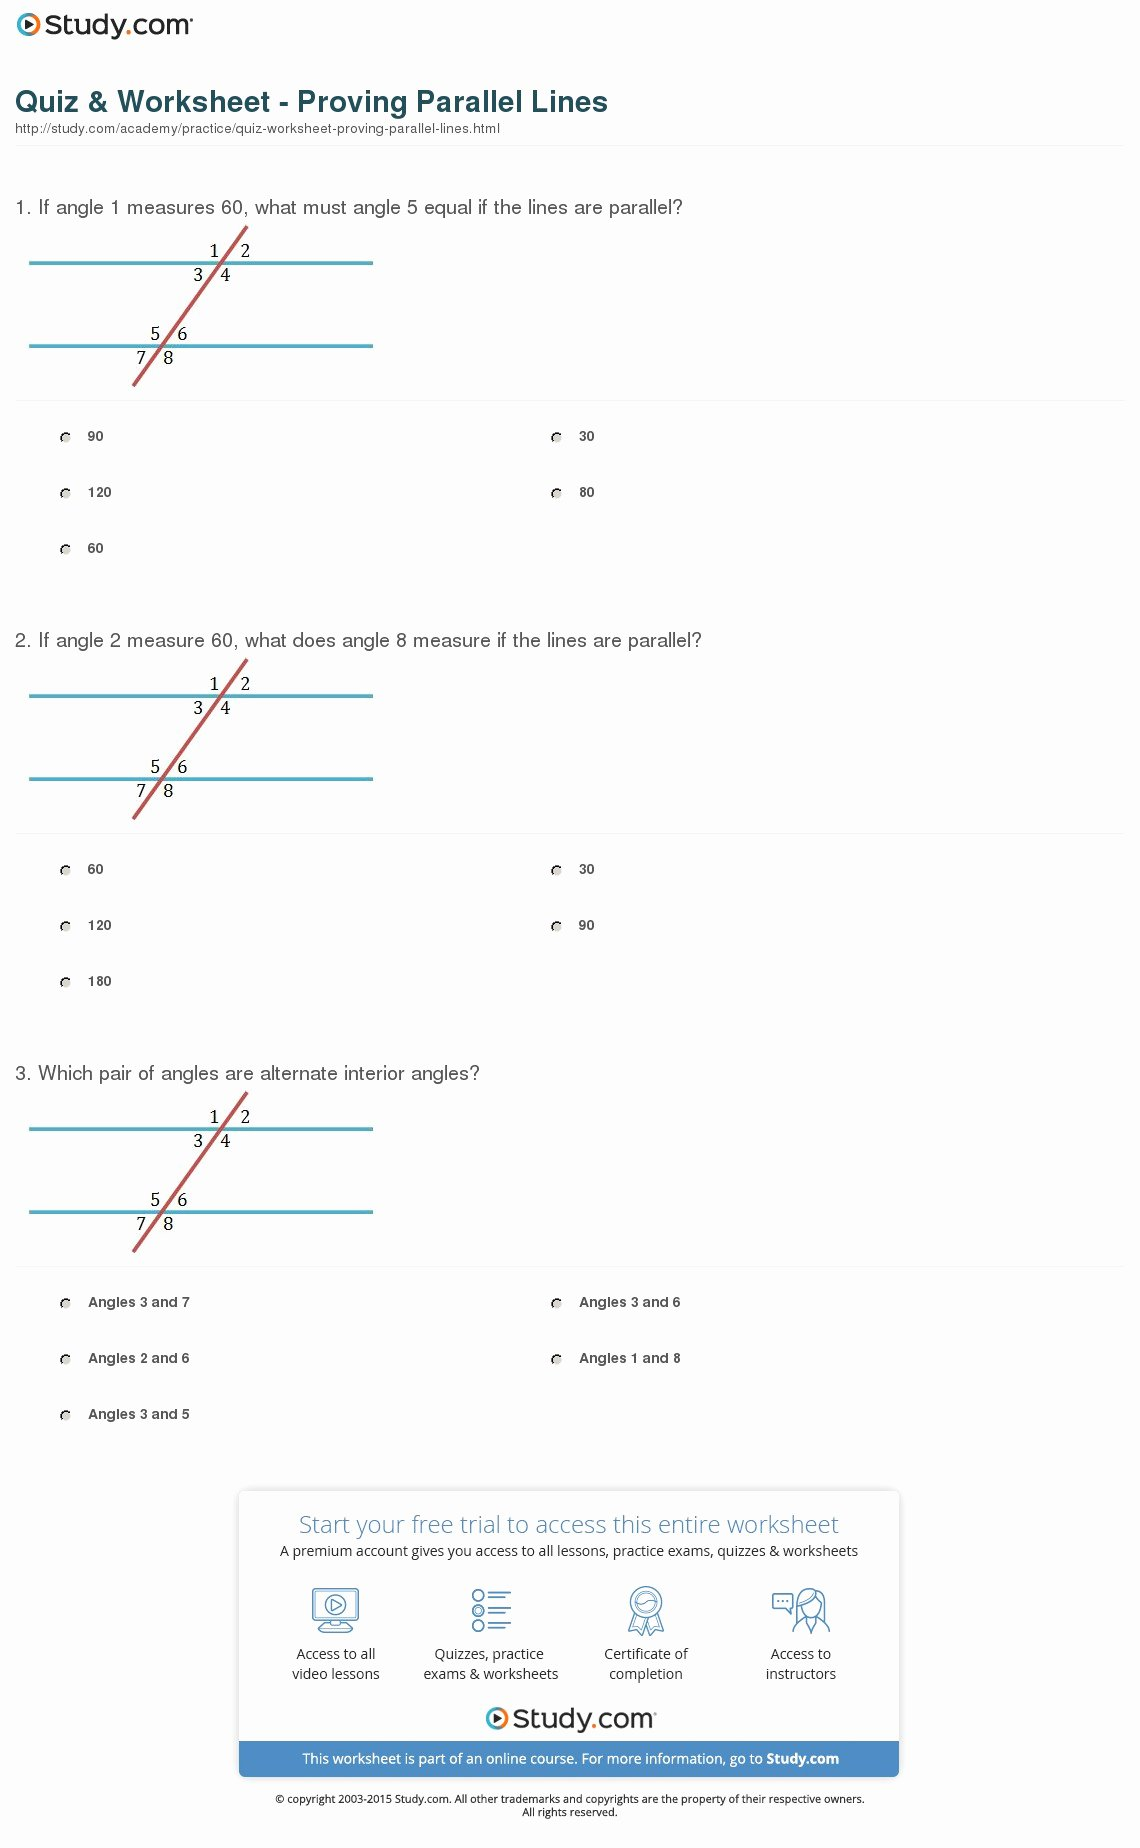 Parallel Lines Proofs Worksheet Answers Best Of Quiz & Worksheet Proving Parallel Lines